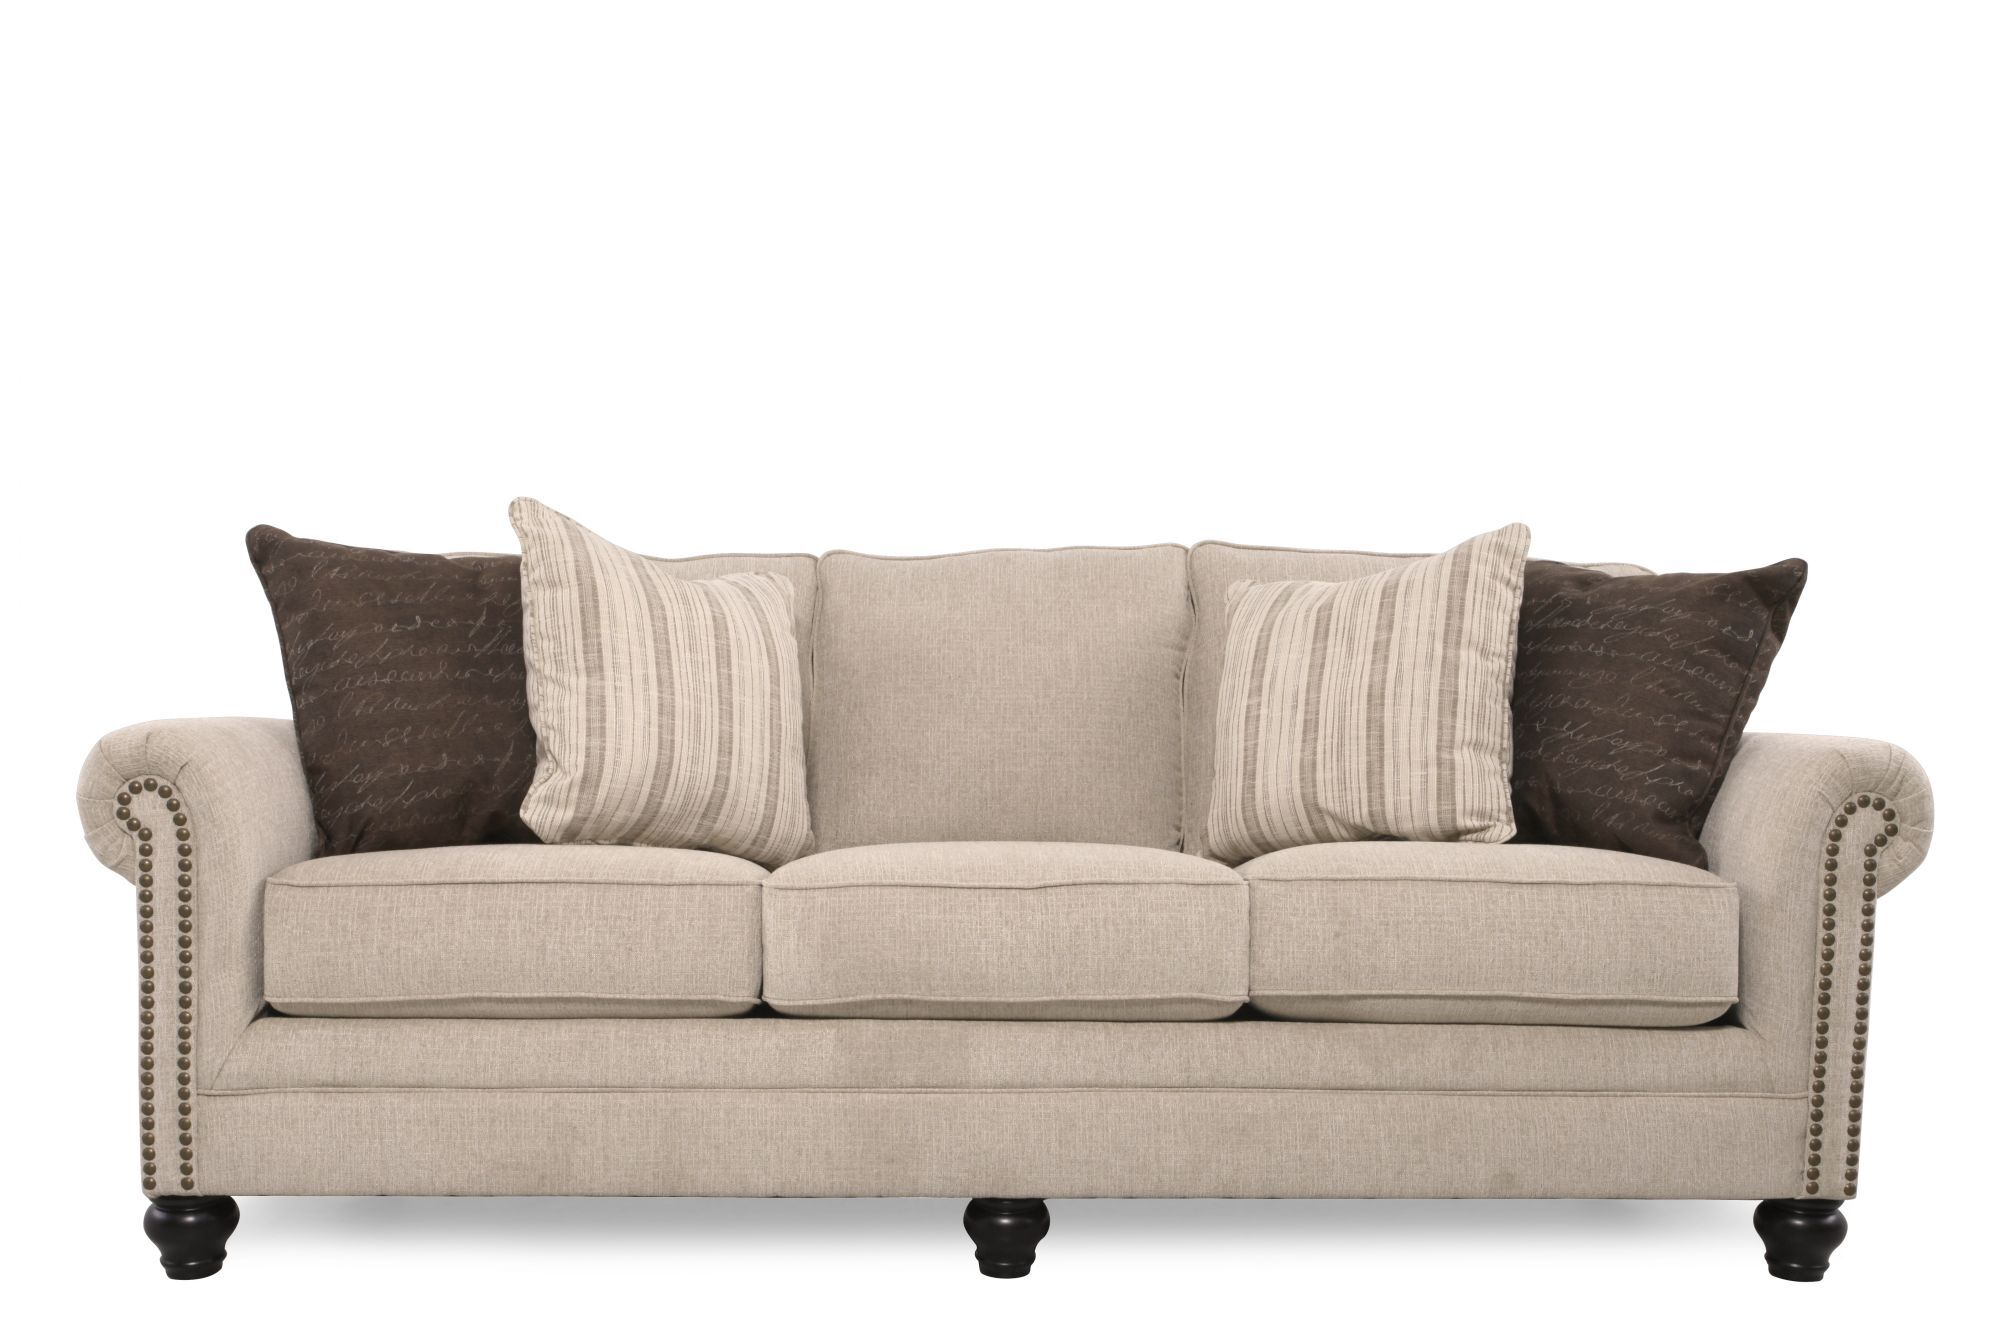 Ashley 90 Casual Sofa in Linen Mathis Brothers Furniture